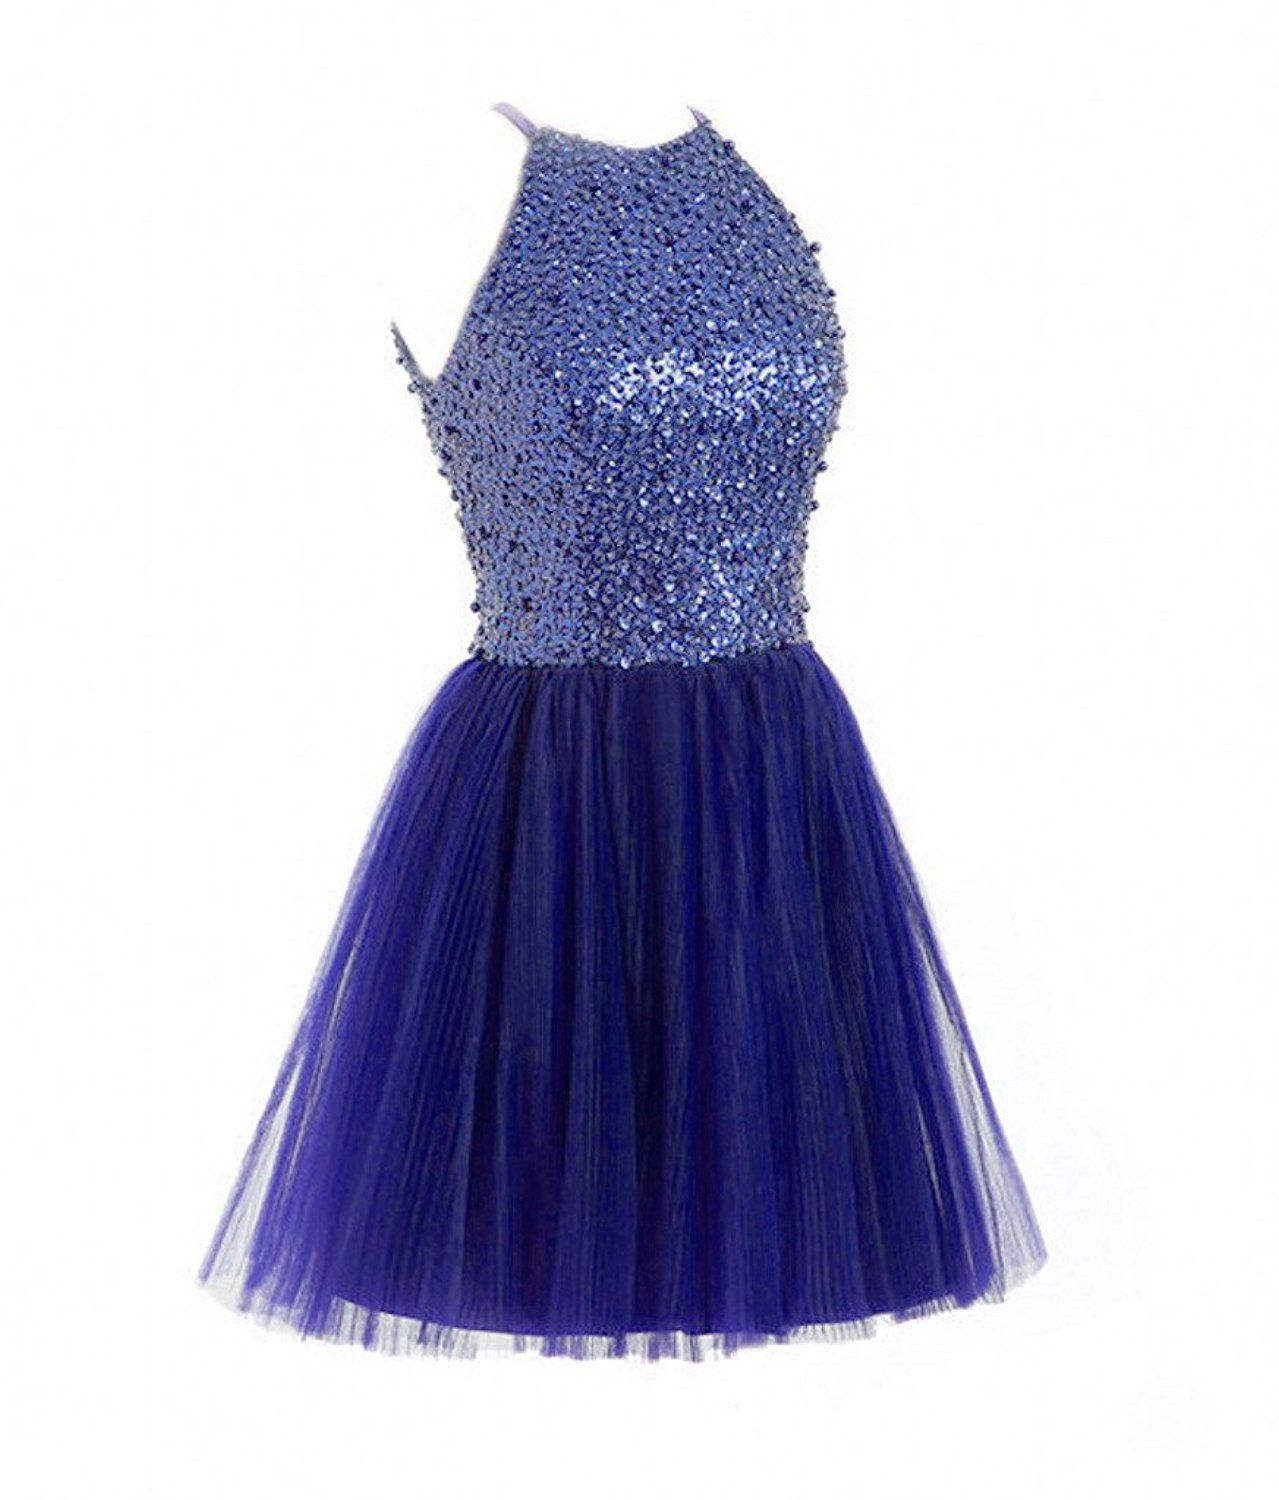 Beilite womenus beads short homecoming dresses cocktail party gown